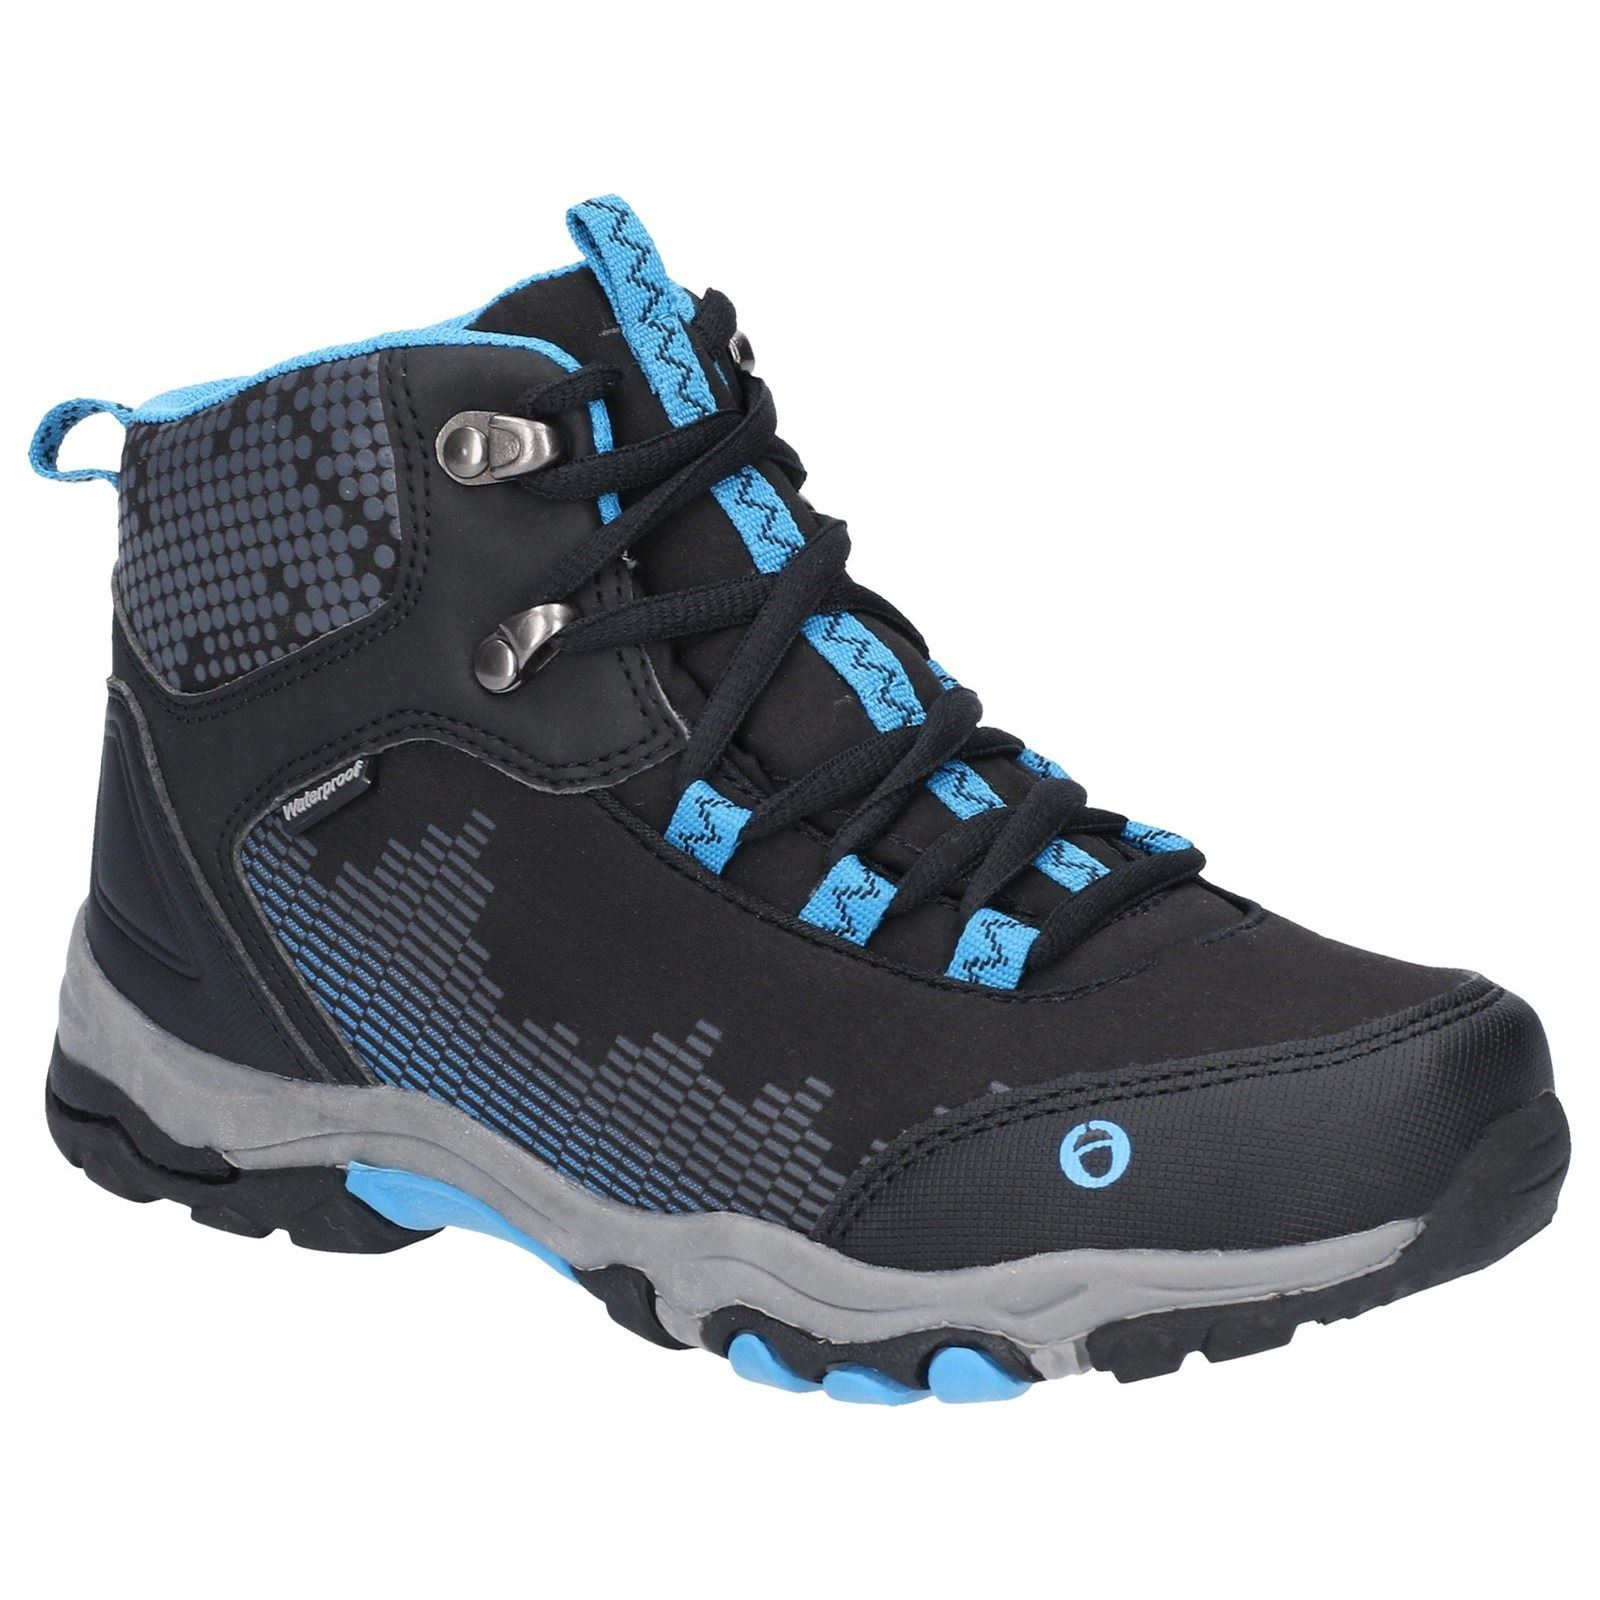 388c2b29b68 Details about Cotswold Childrens Hiking boots Ducklington Lace Up  Waterproof boots Black Blue